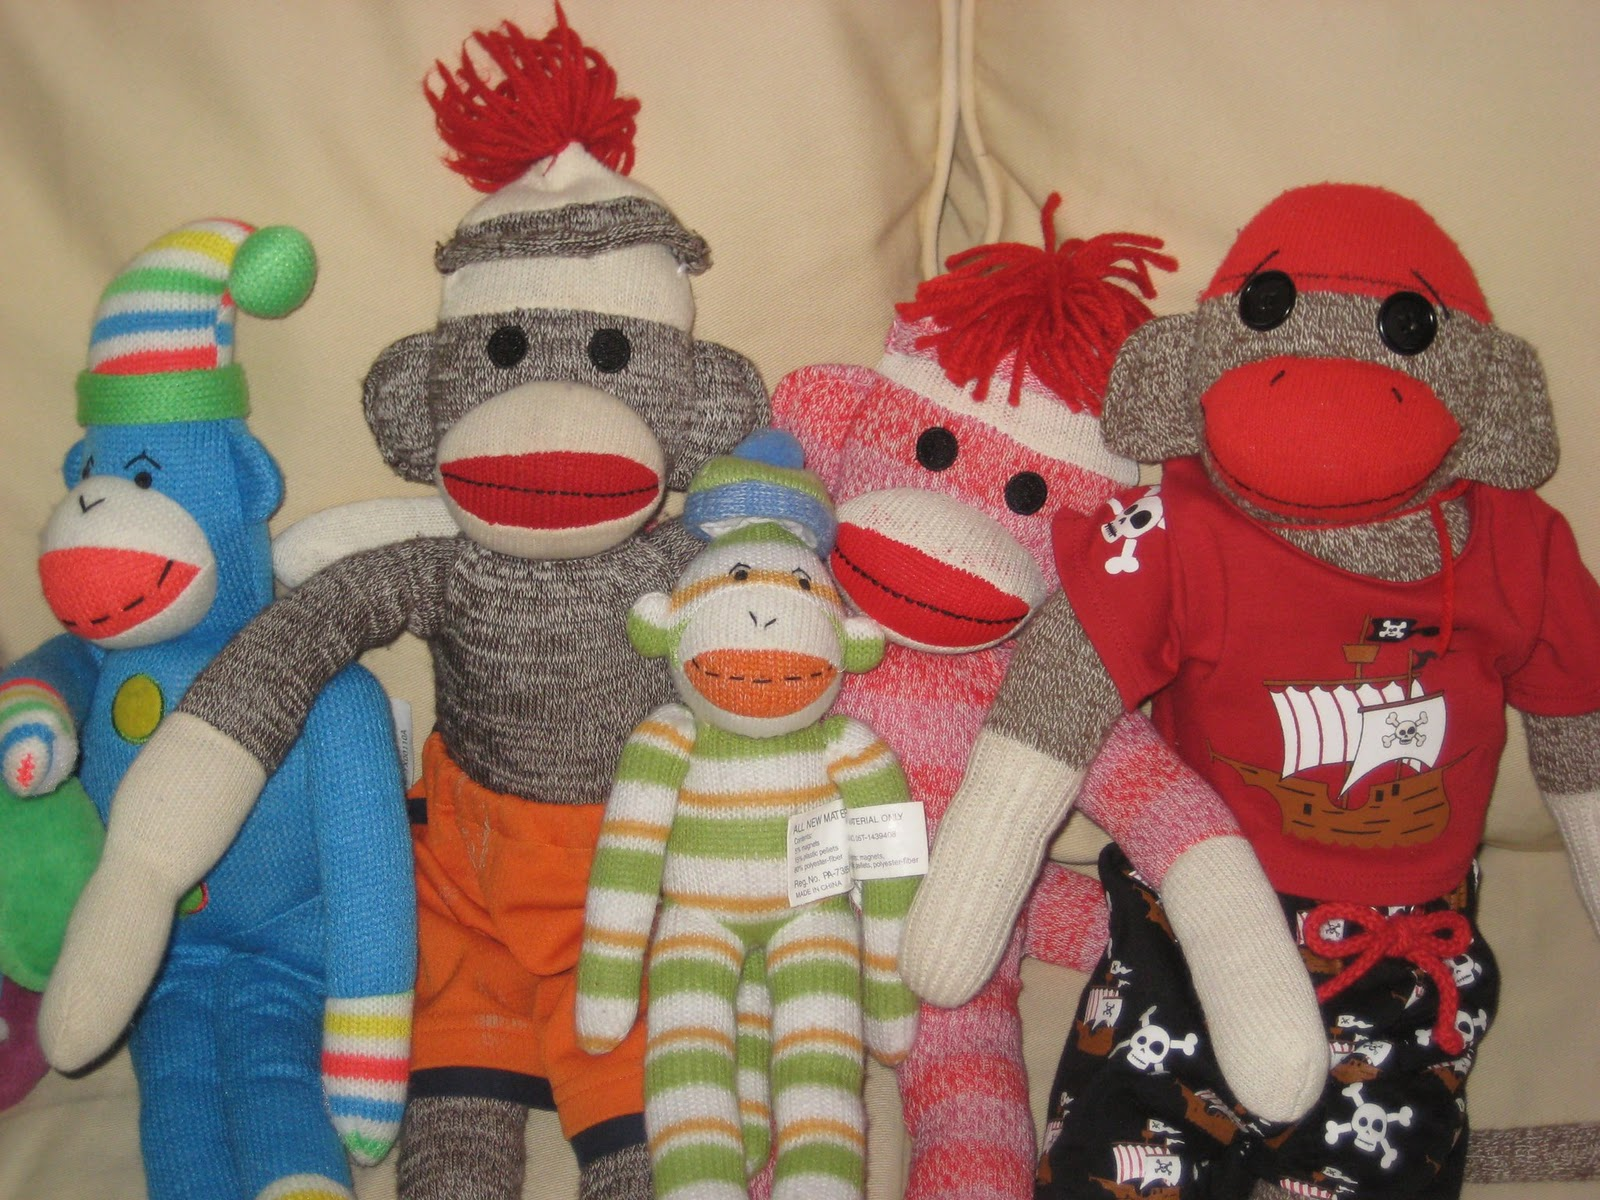 you, me and b: diy sock monkey costume - pictorial instructions